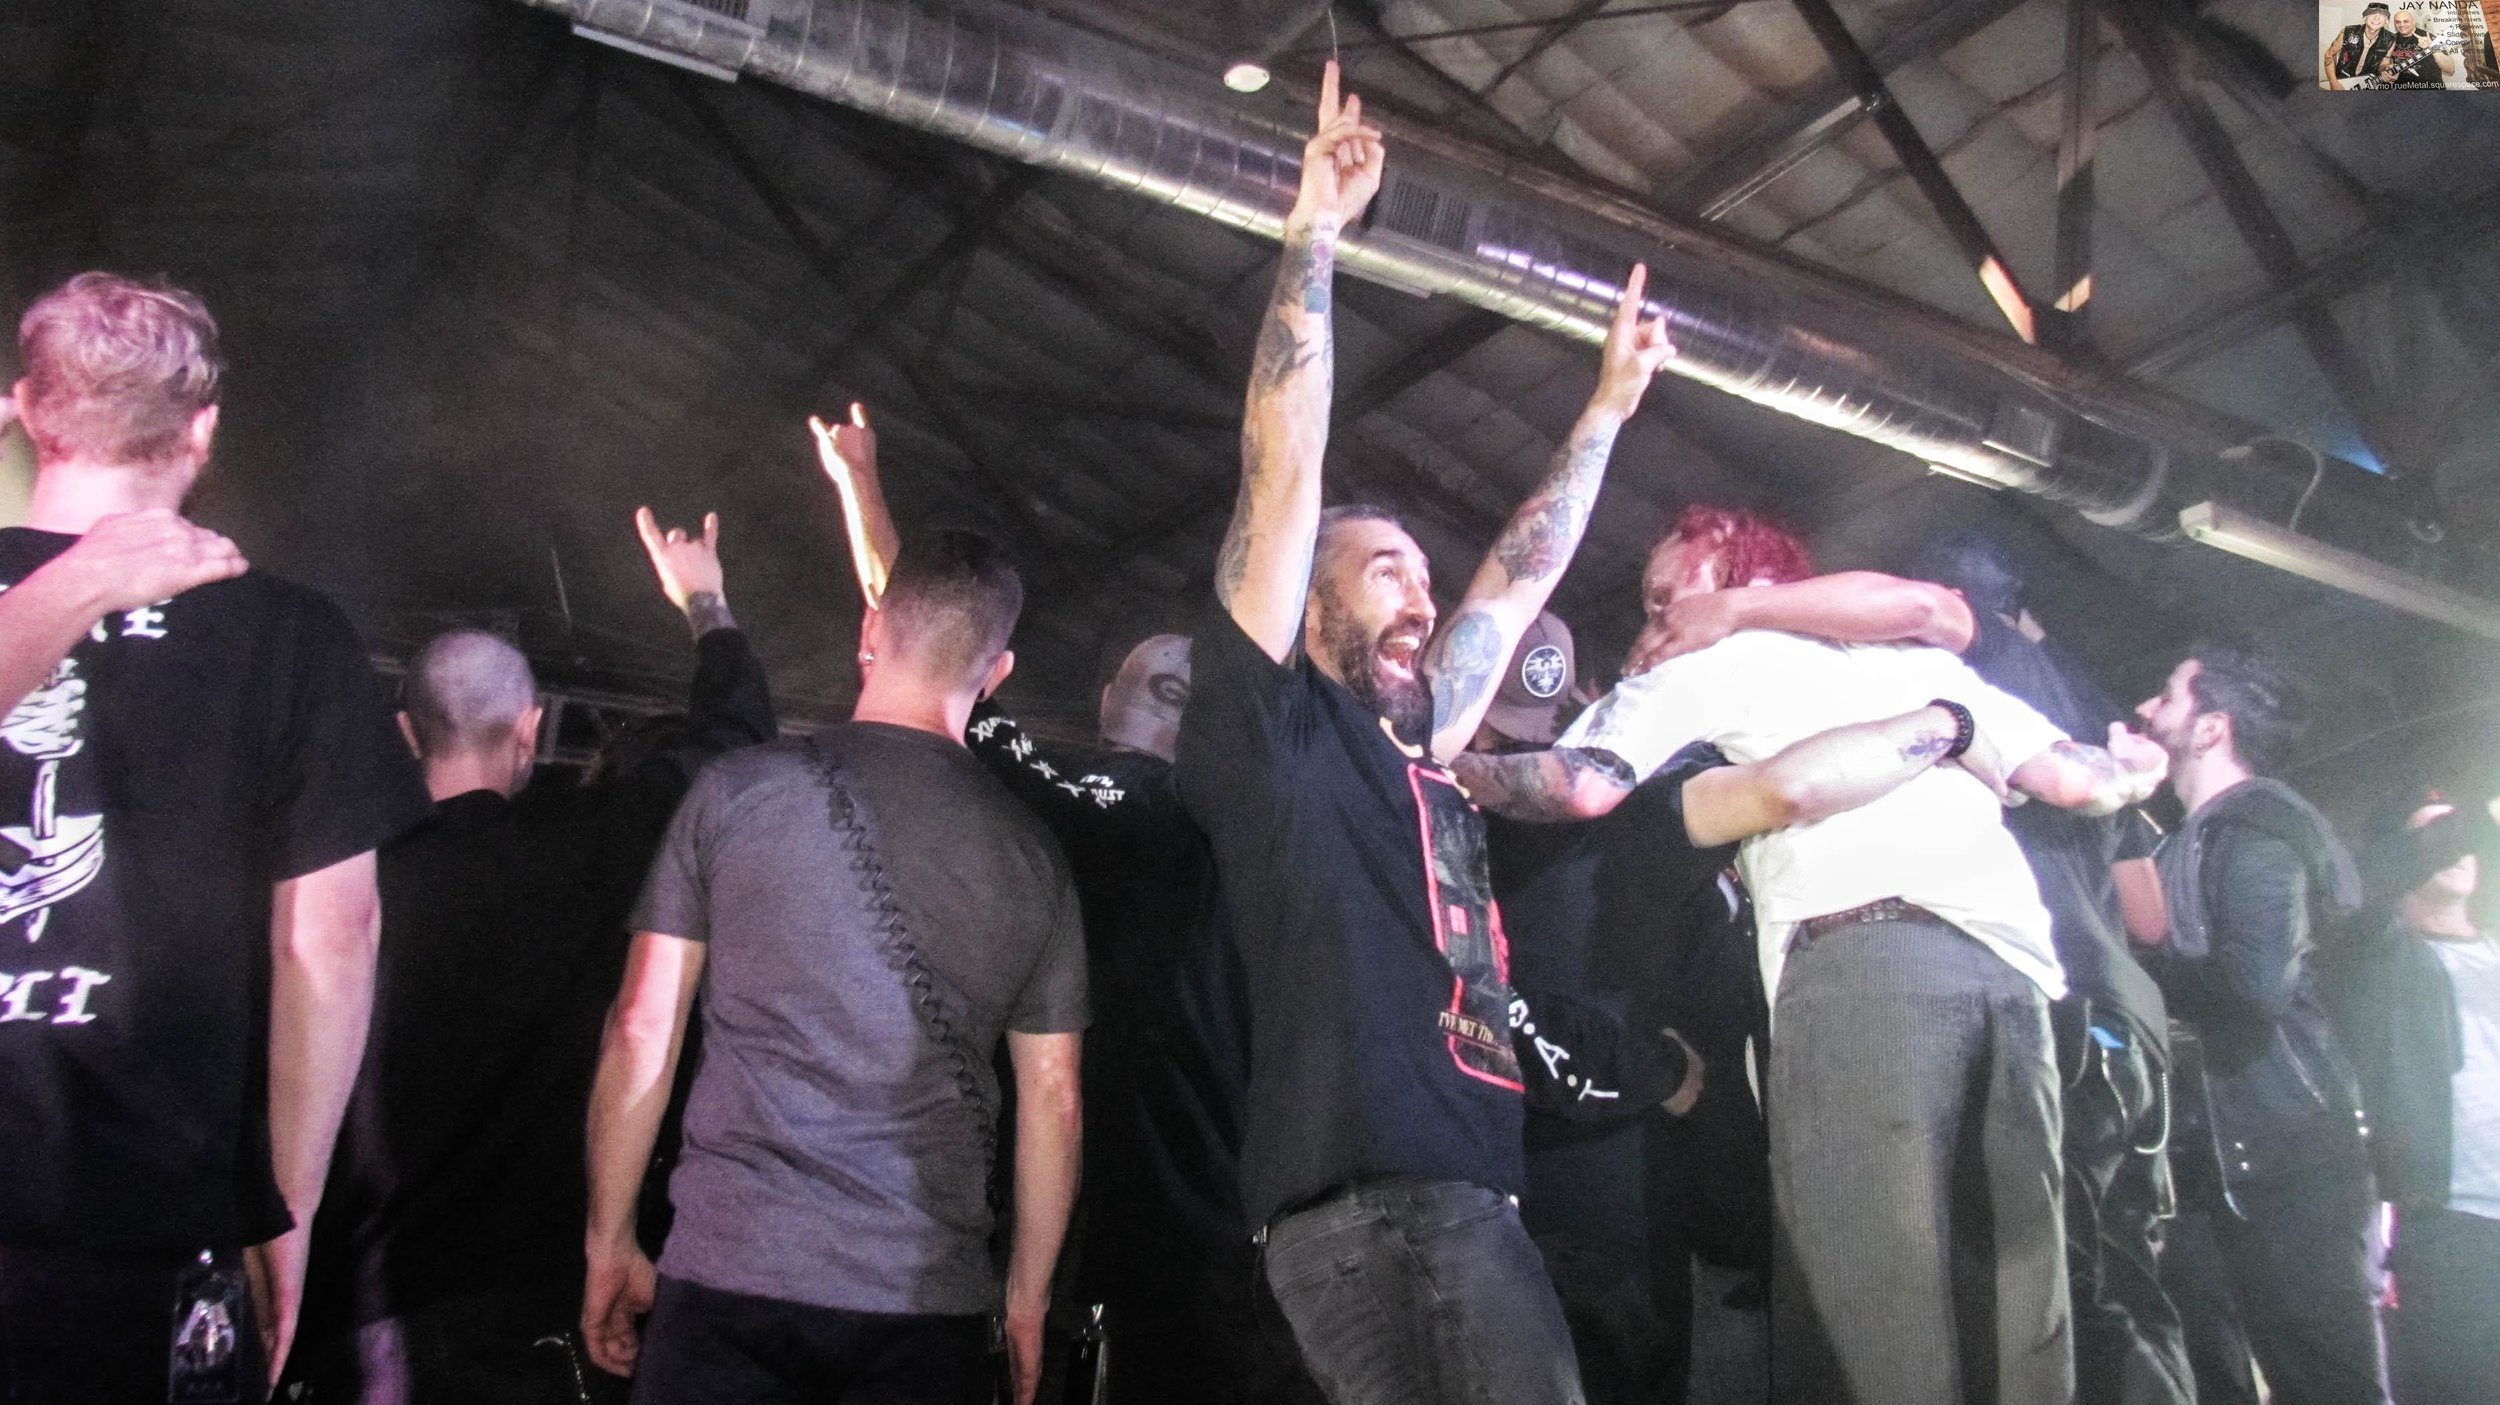 As the artists get lined up for a tour-ending picture, Sevendust guitarist Clint Lowery turns one last time toward the crowd.